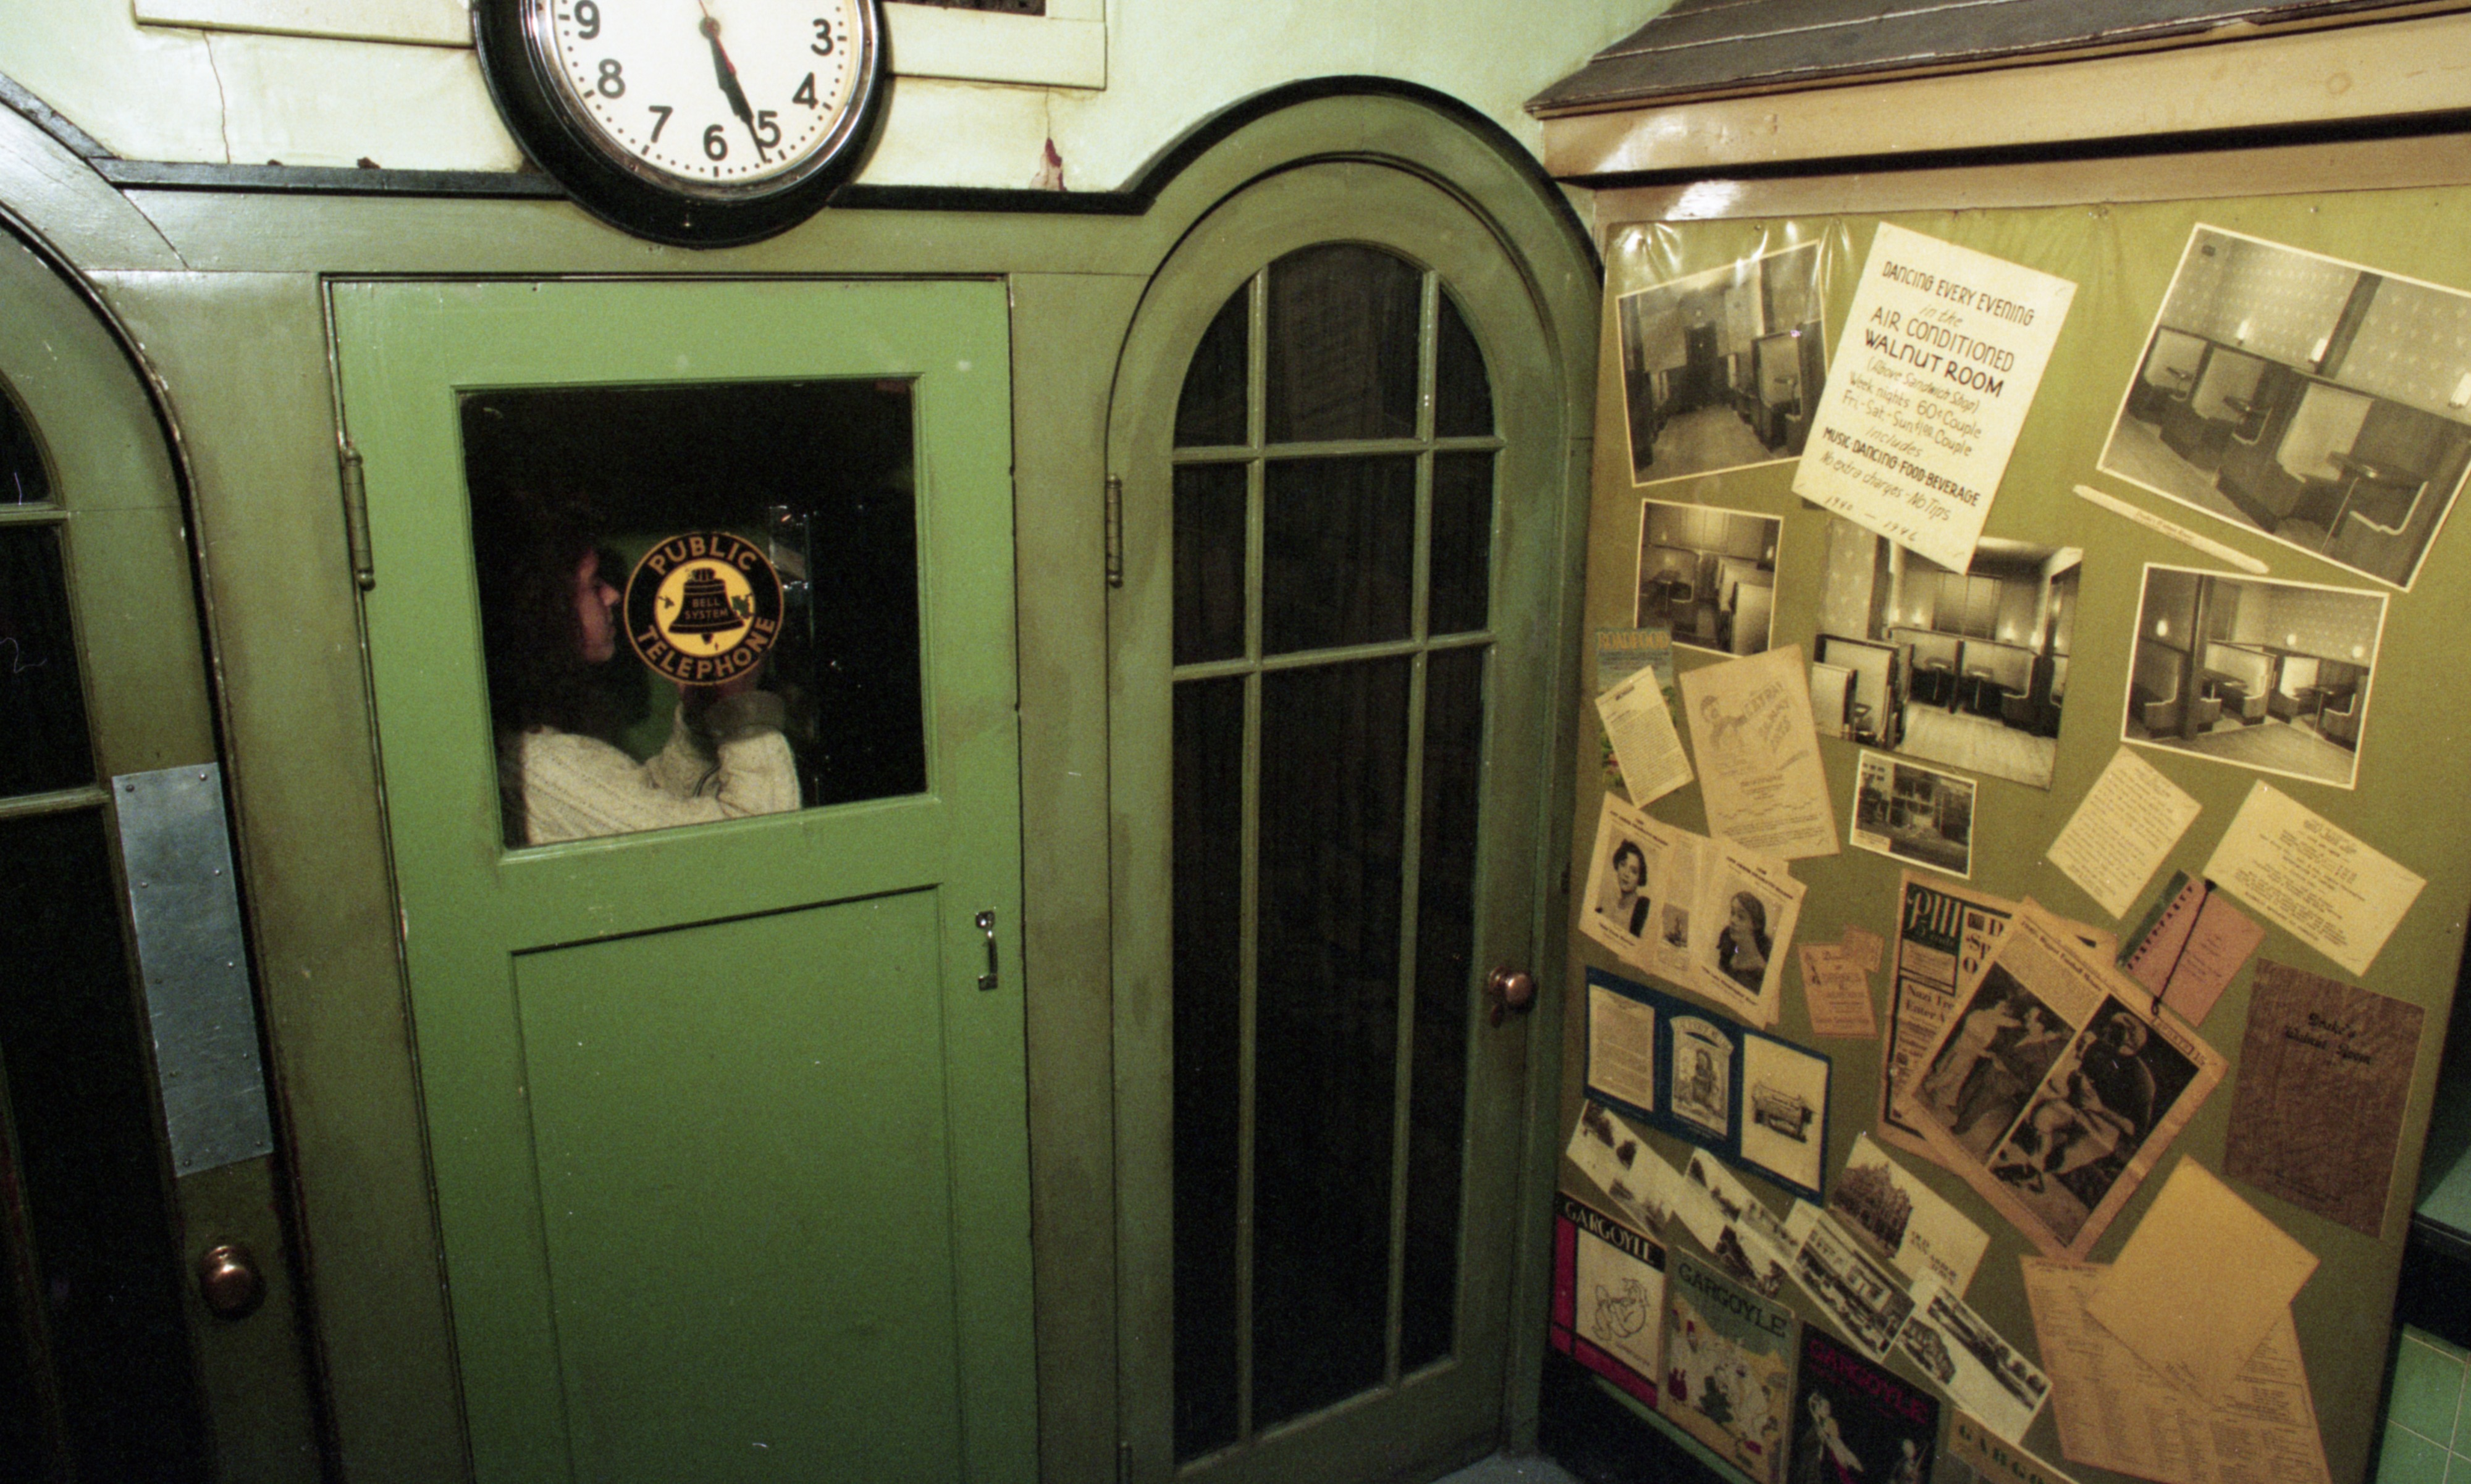 Phone Booth At Drake's Sandwich Shop, November 13, 1993 image